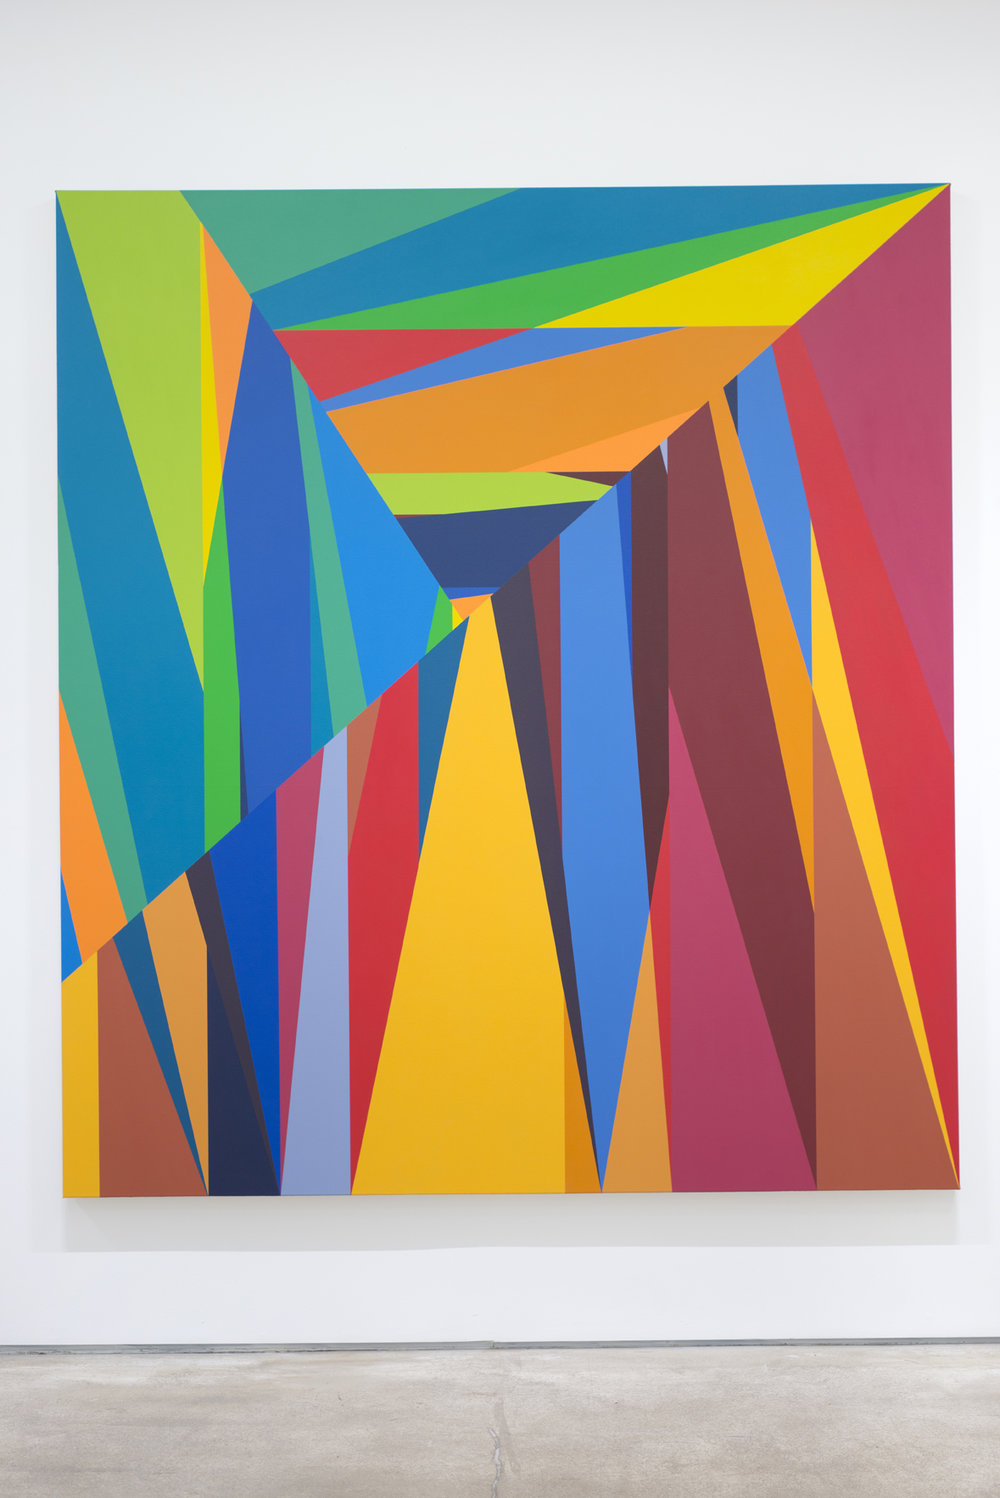 Odili Donald Odita,  The Door to Revolution , 2015, acrylic on canvas, 90 x 80 inches ©Odili Donald Odita.  Courtesy of the artist and Jack Shainman Gallery, New York.